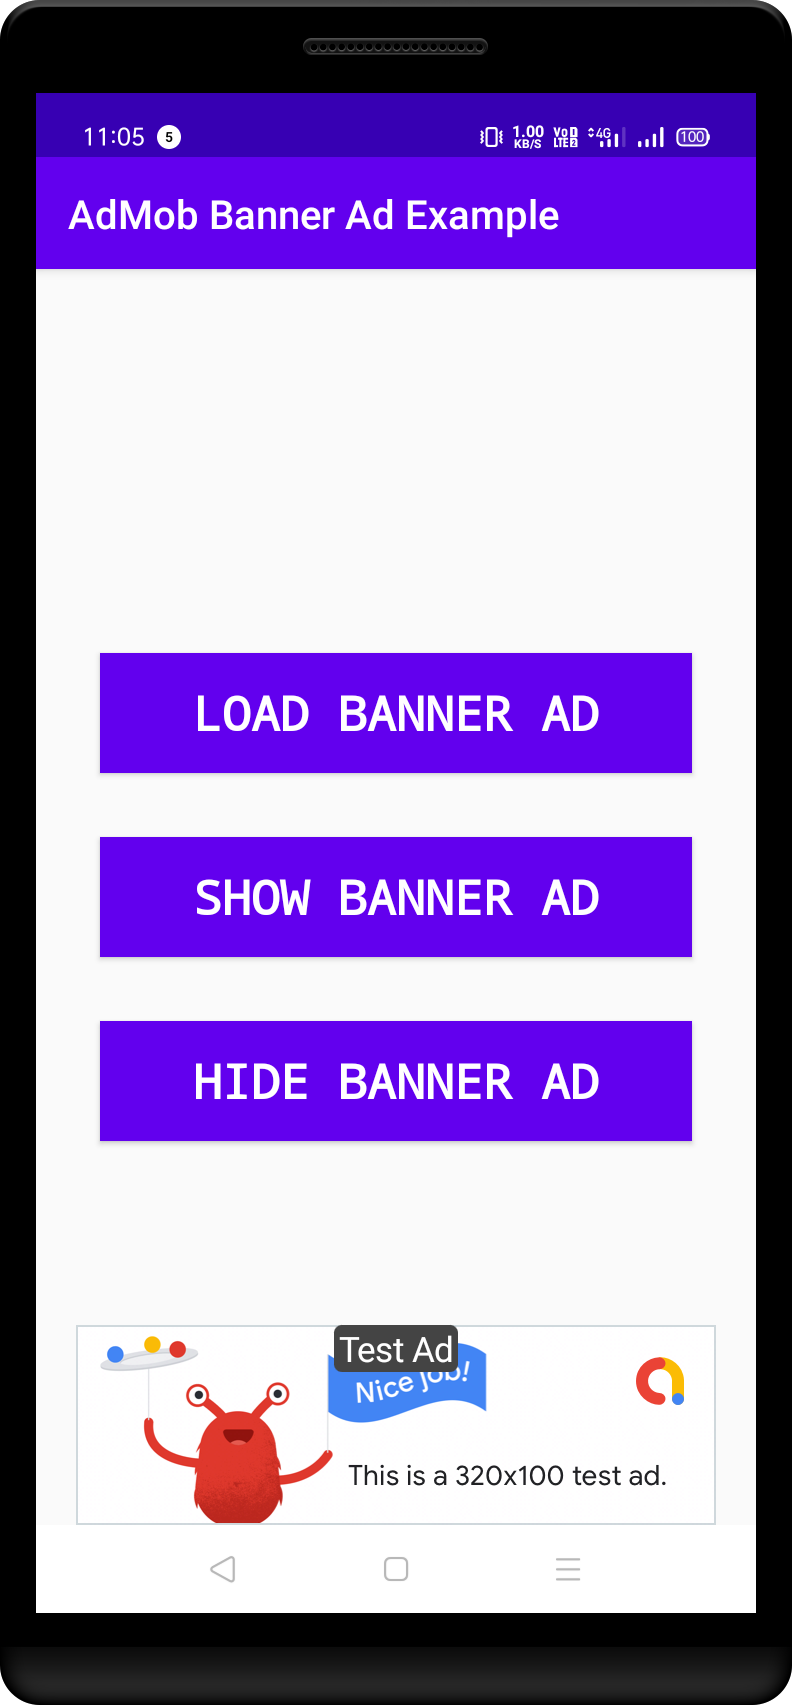 Large Banner Ad Shown at the bottom of the screen